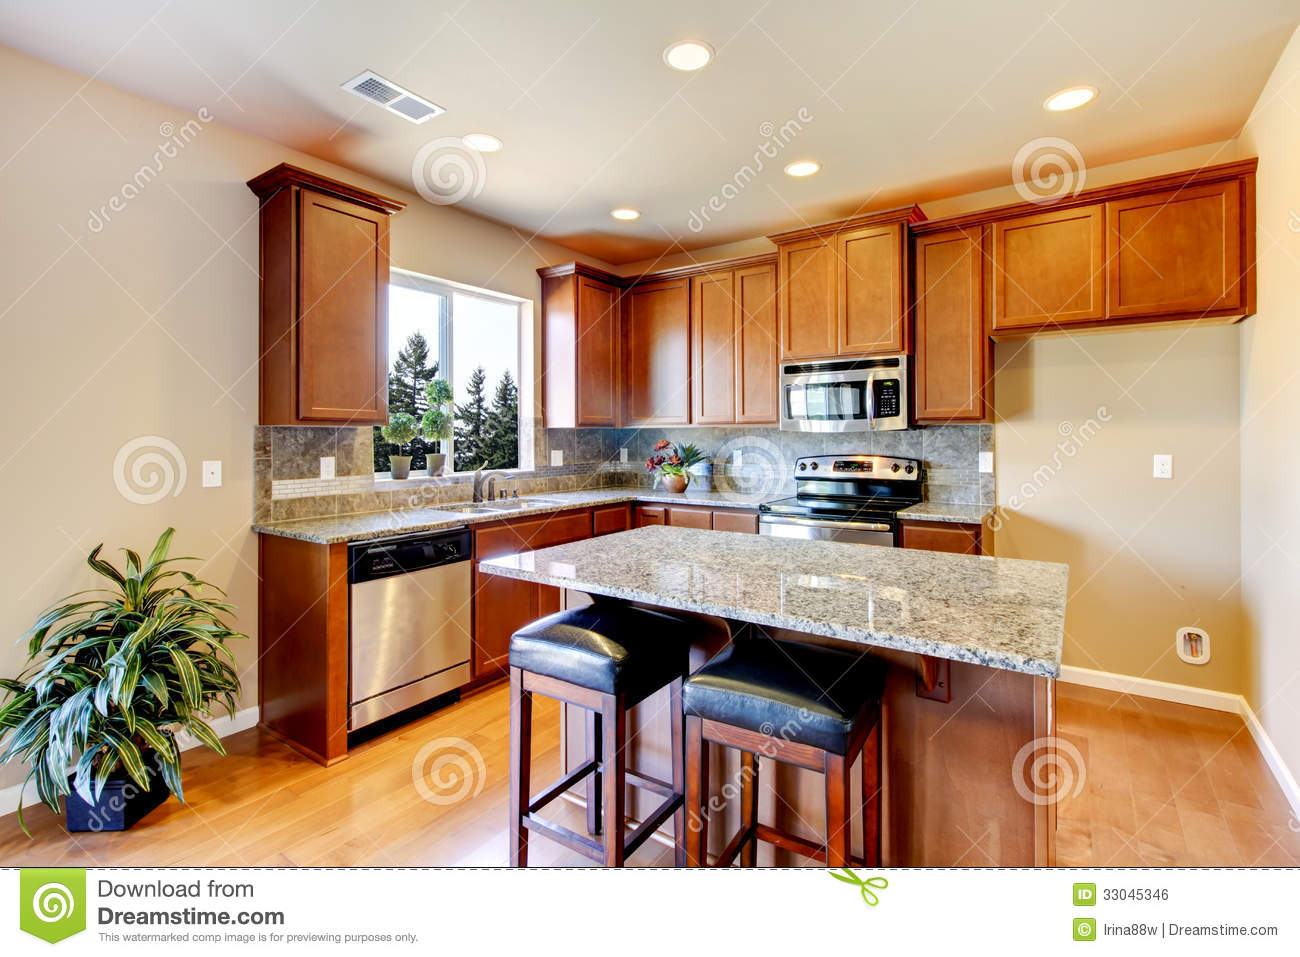 New Home Kitchen Interior With Dark Brown Cabinets Stock